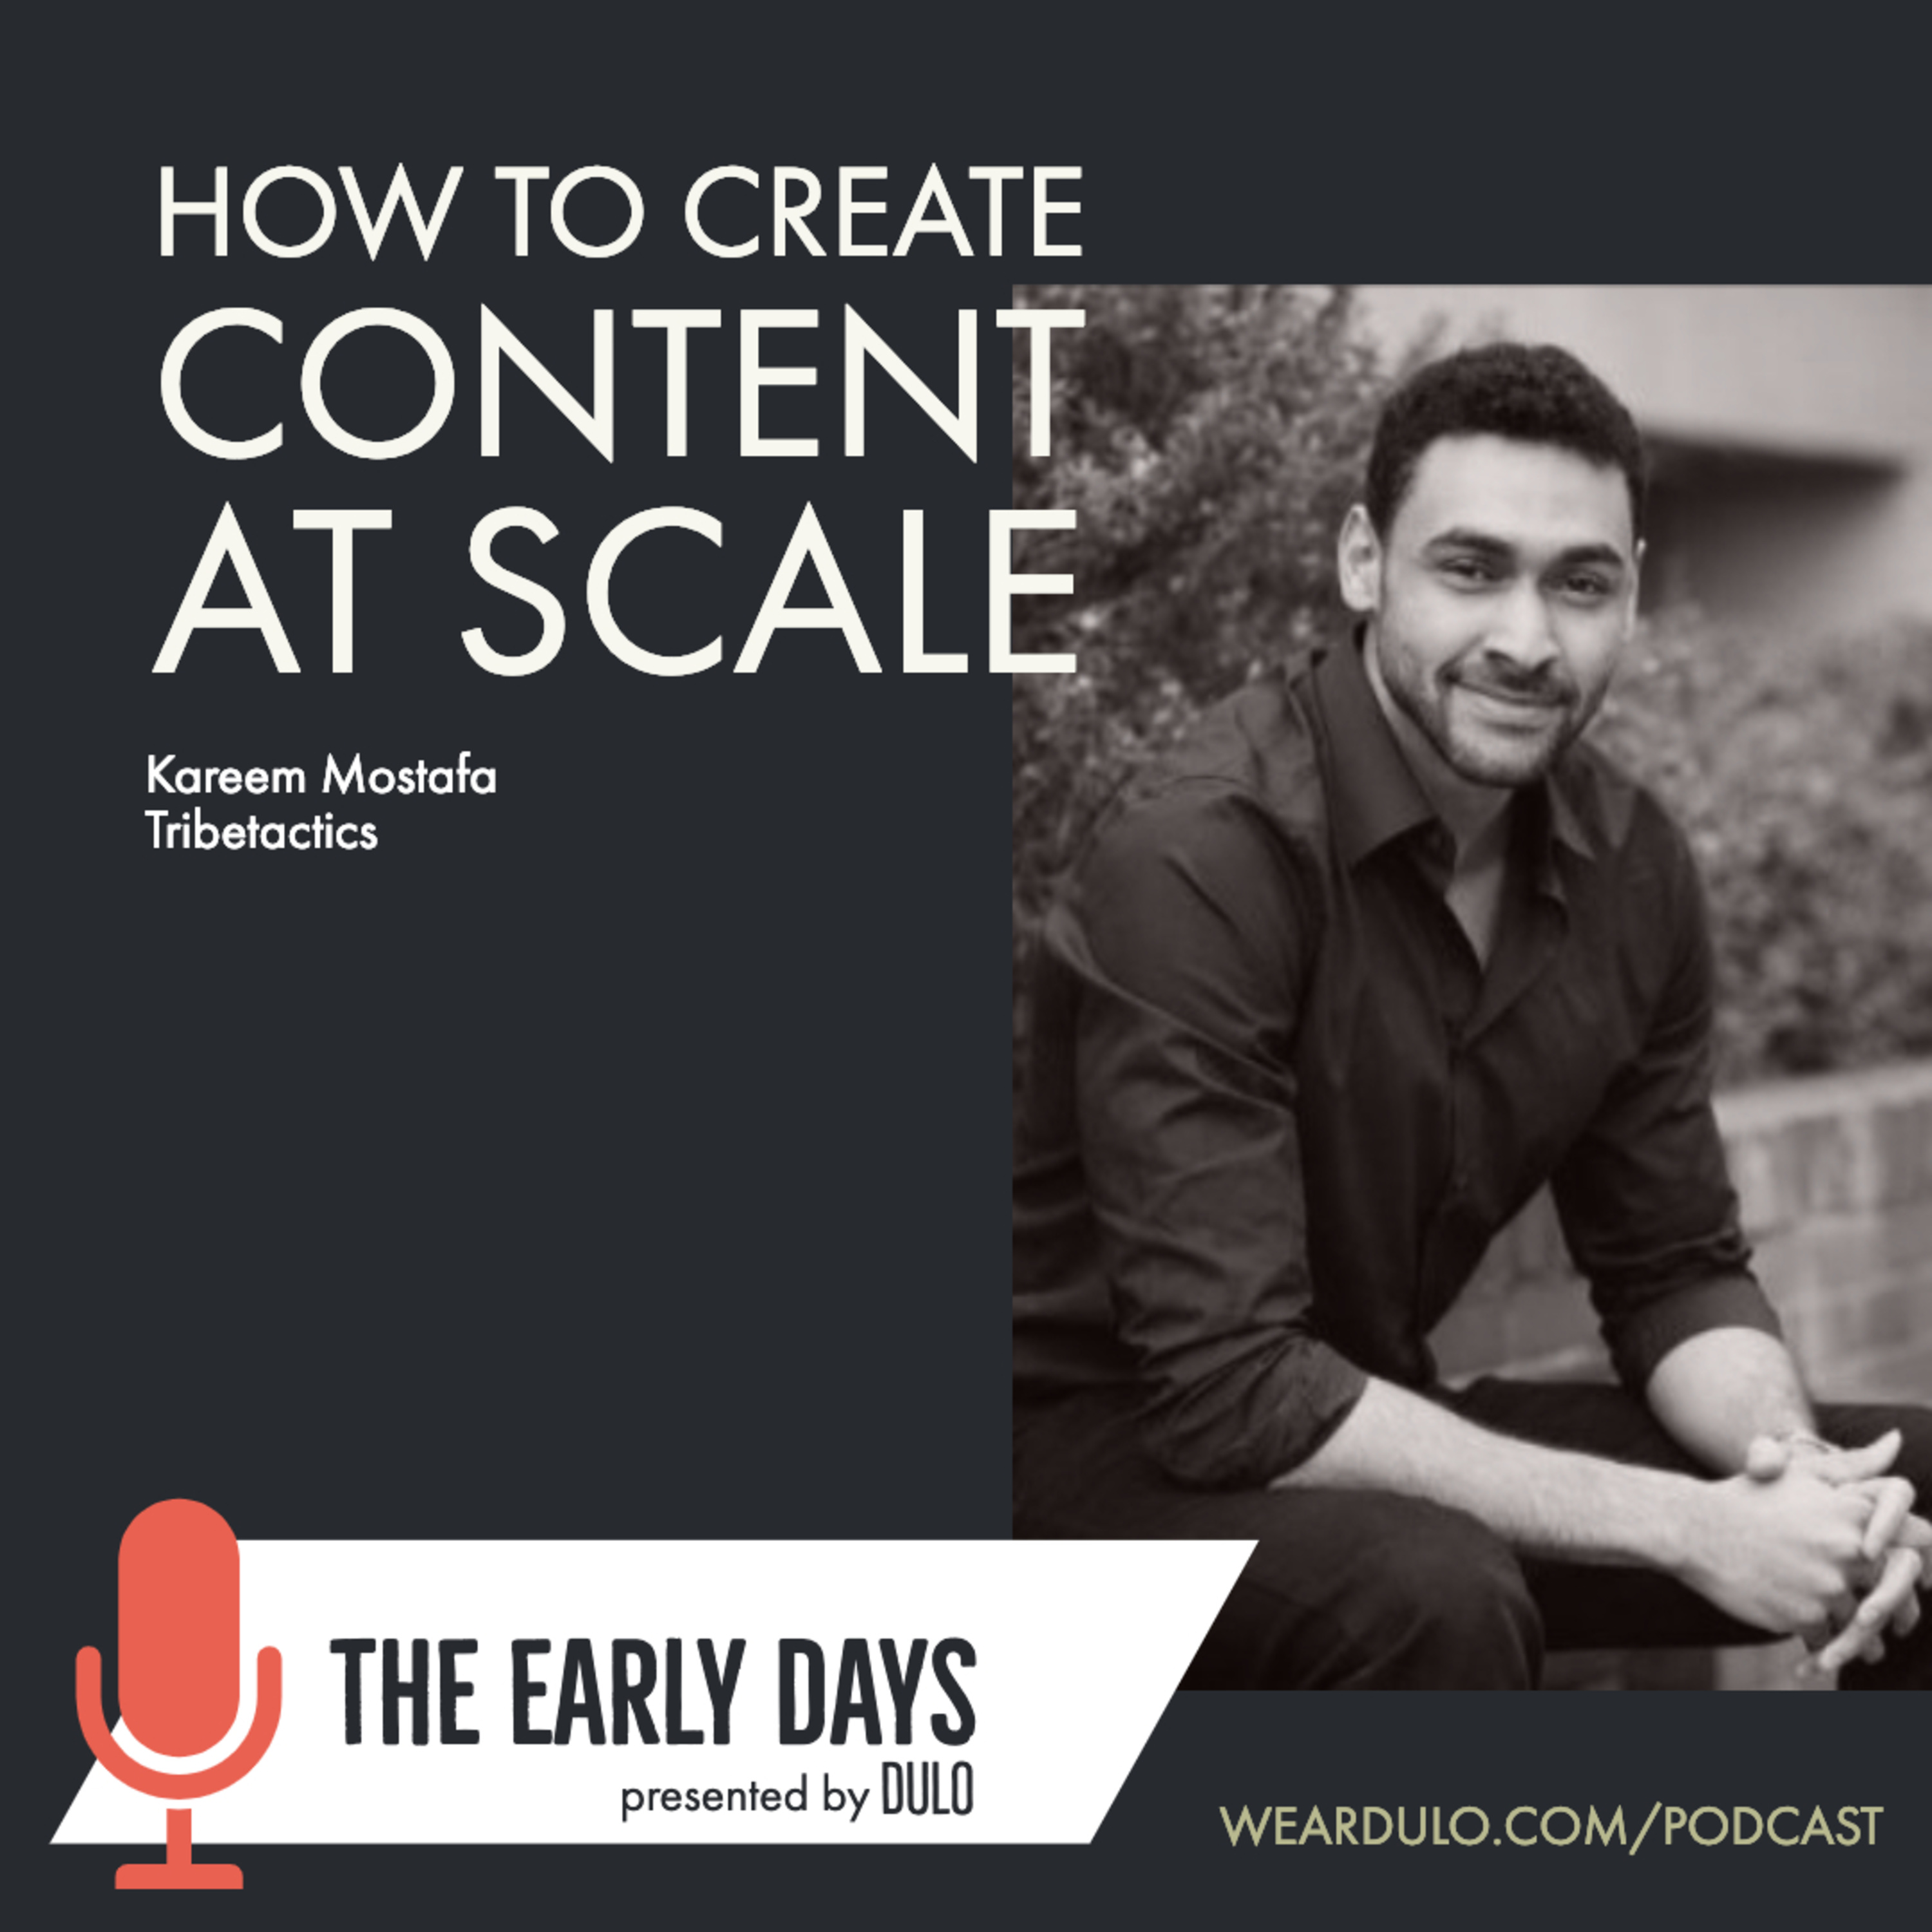 How to create content at scale | The Early Days by DULO (S3E2)